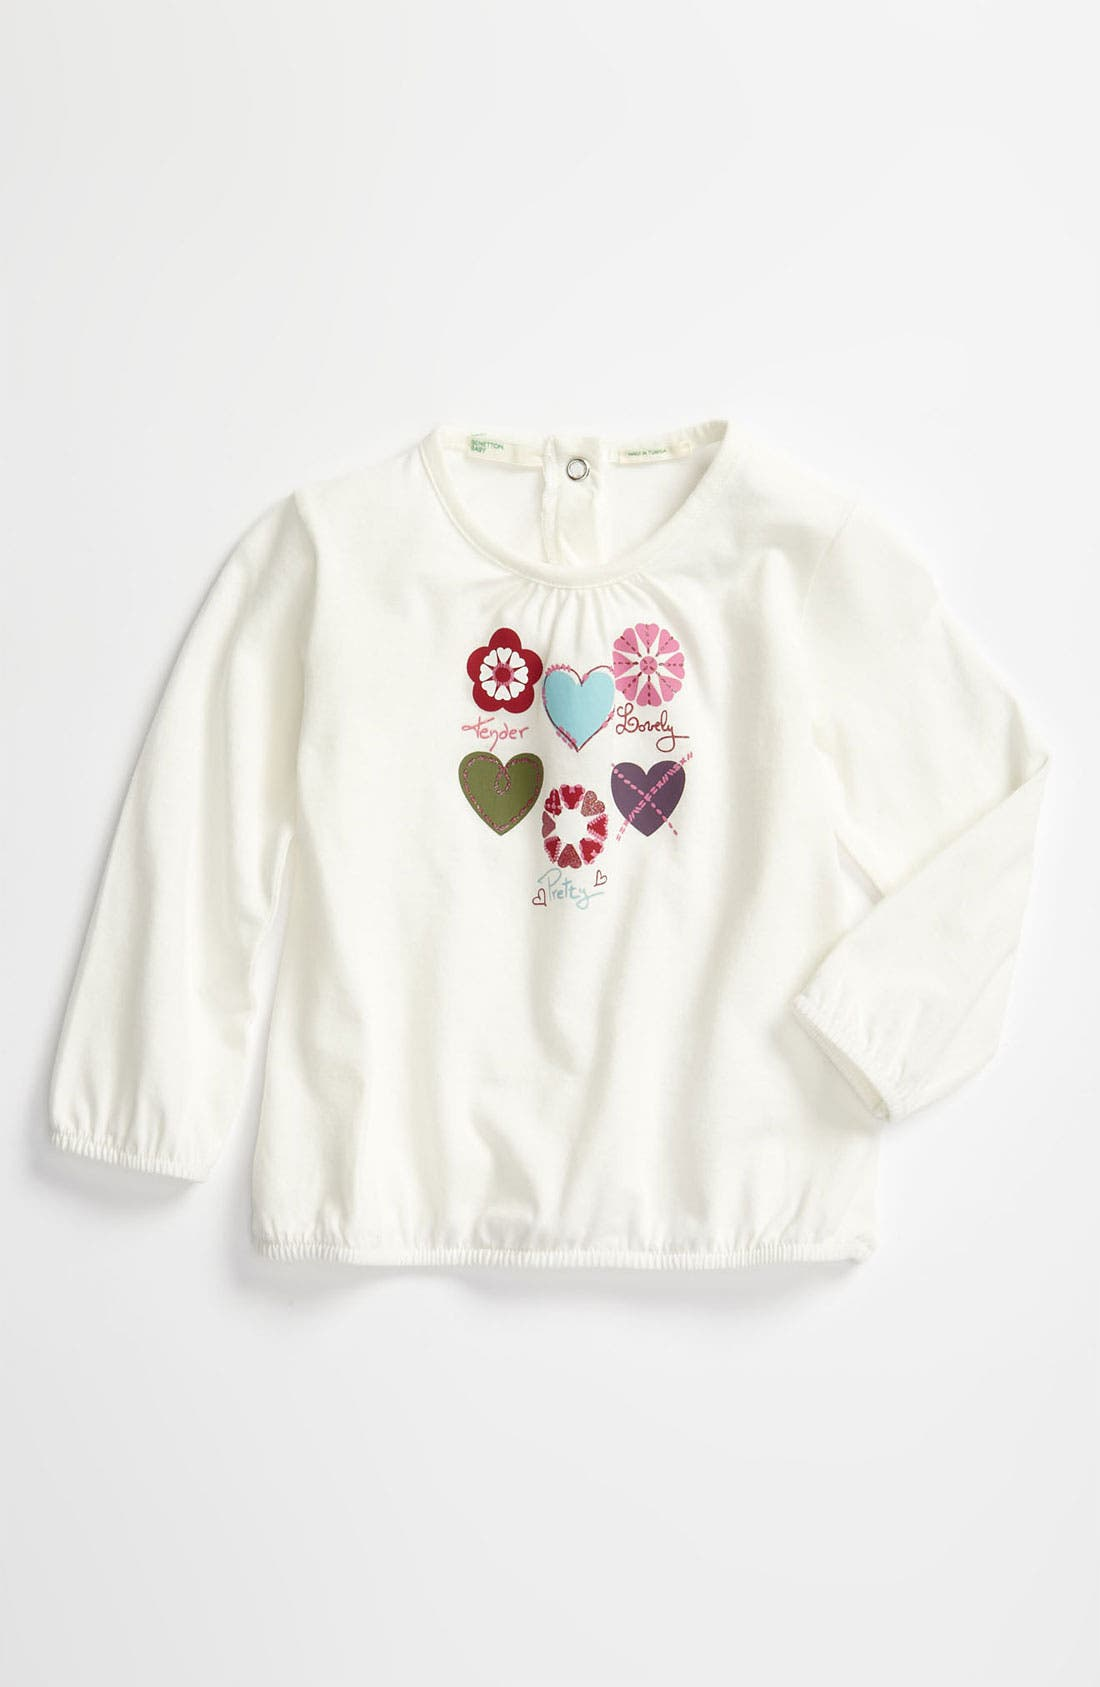 Main Image - United Colors of Benetton Kids 'Lovely' Tee (Infant)